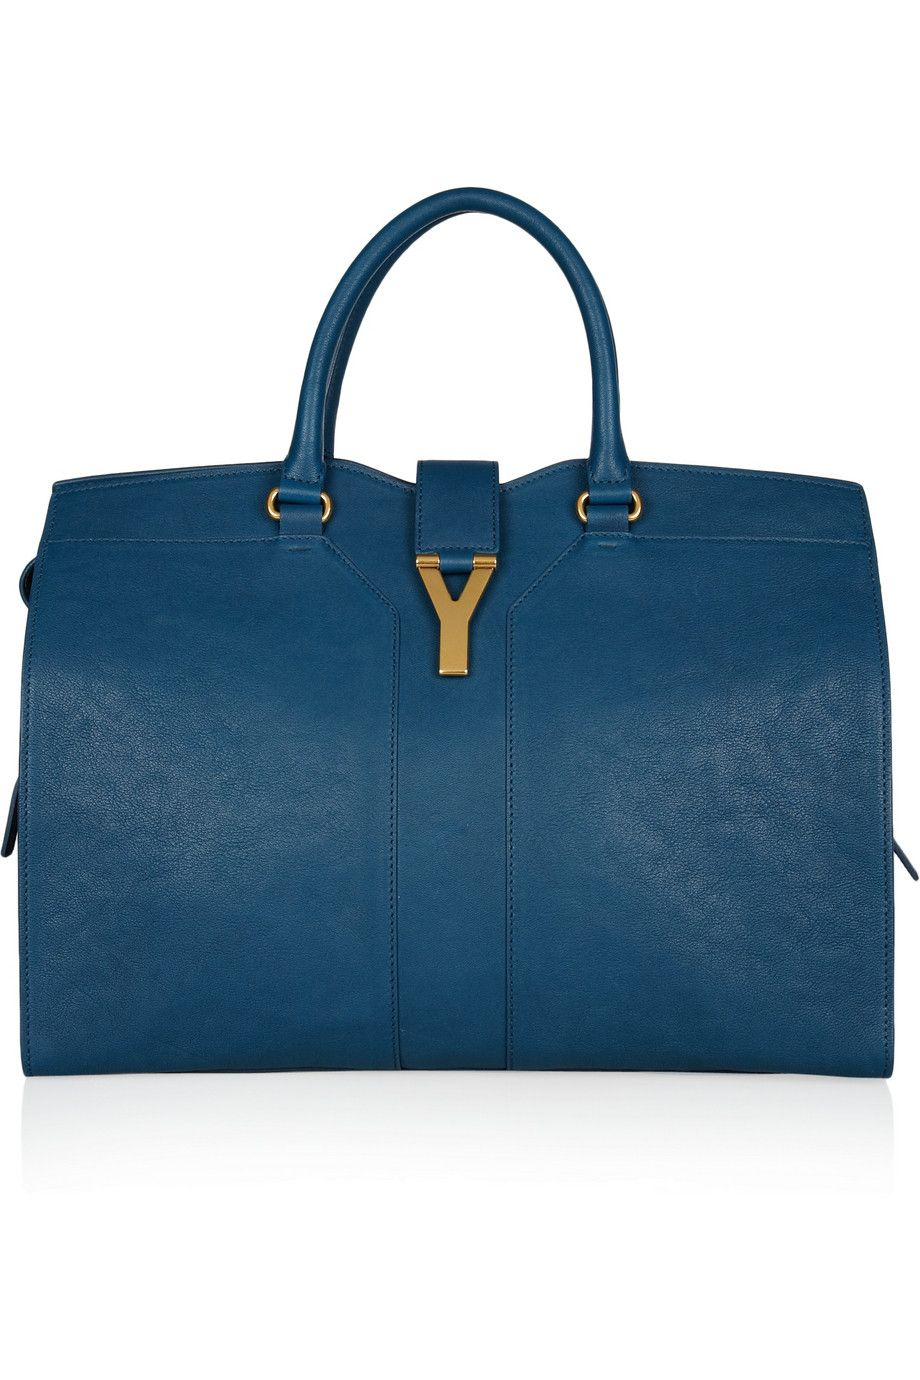 Yves Saint Laurent Large Cabas Chyc leather tote in this STUNNING blue 531fe4aec5dfa